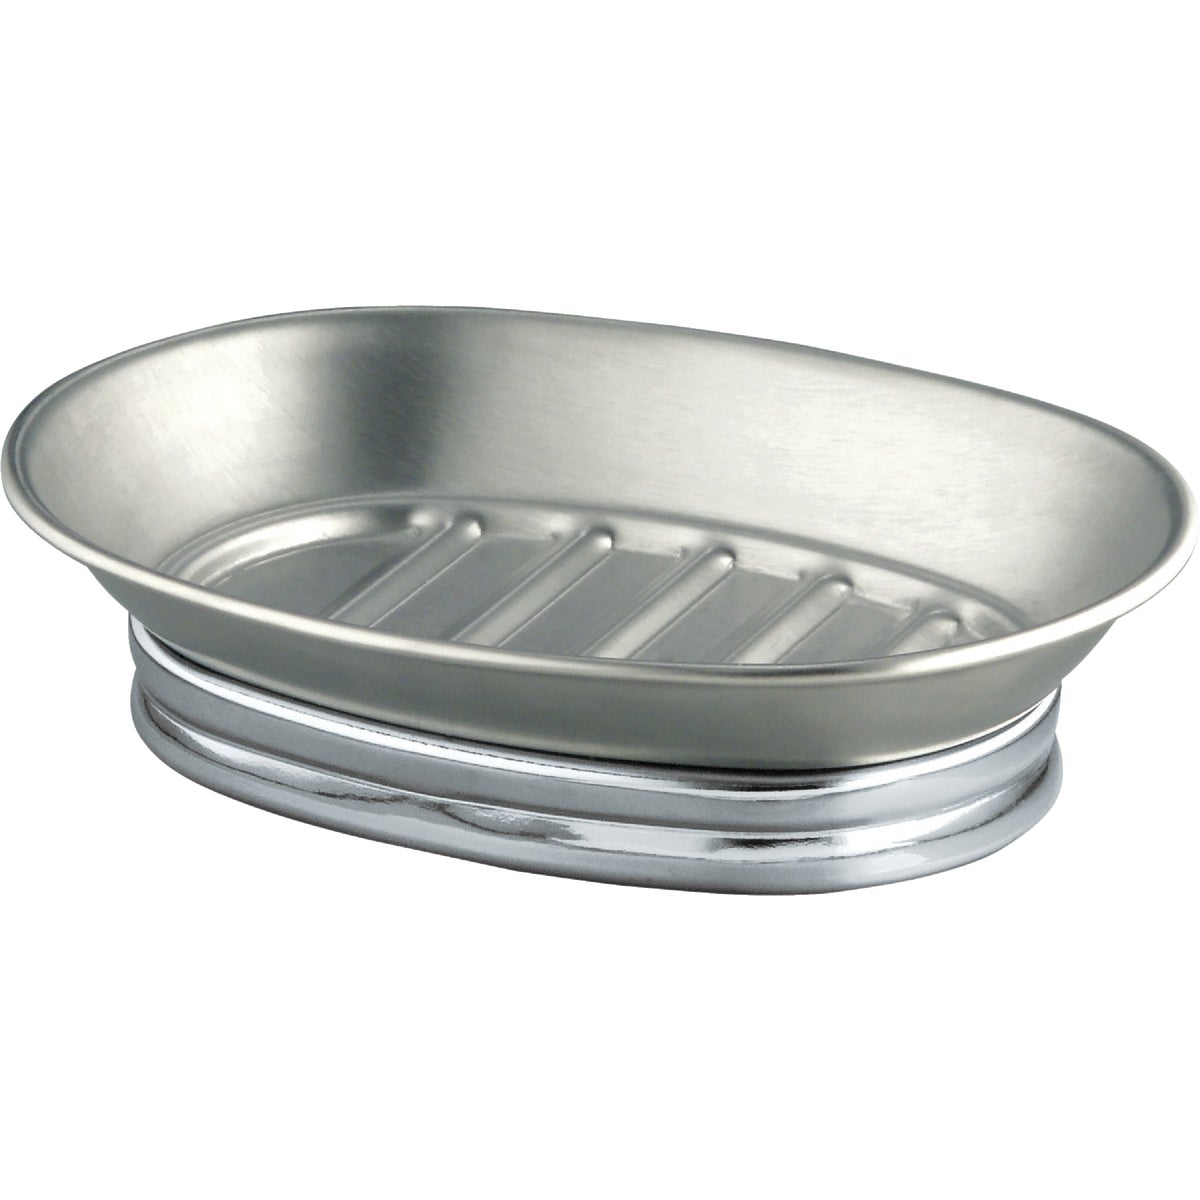 YORK METAL SOAP DISH - 76050 by Interdesign Inc